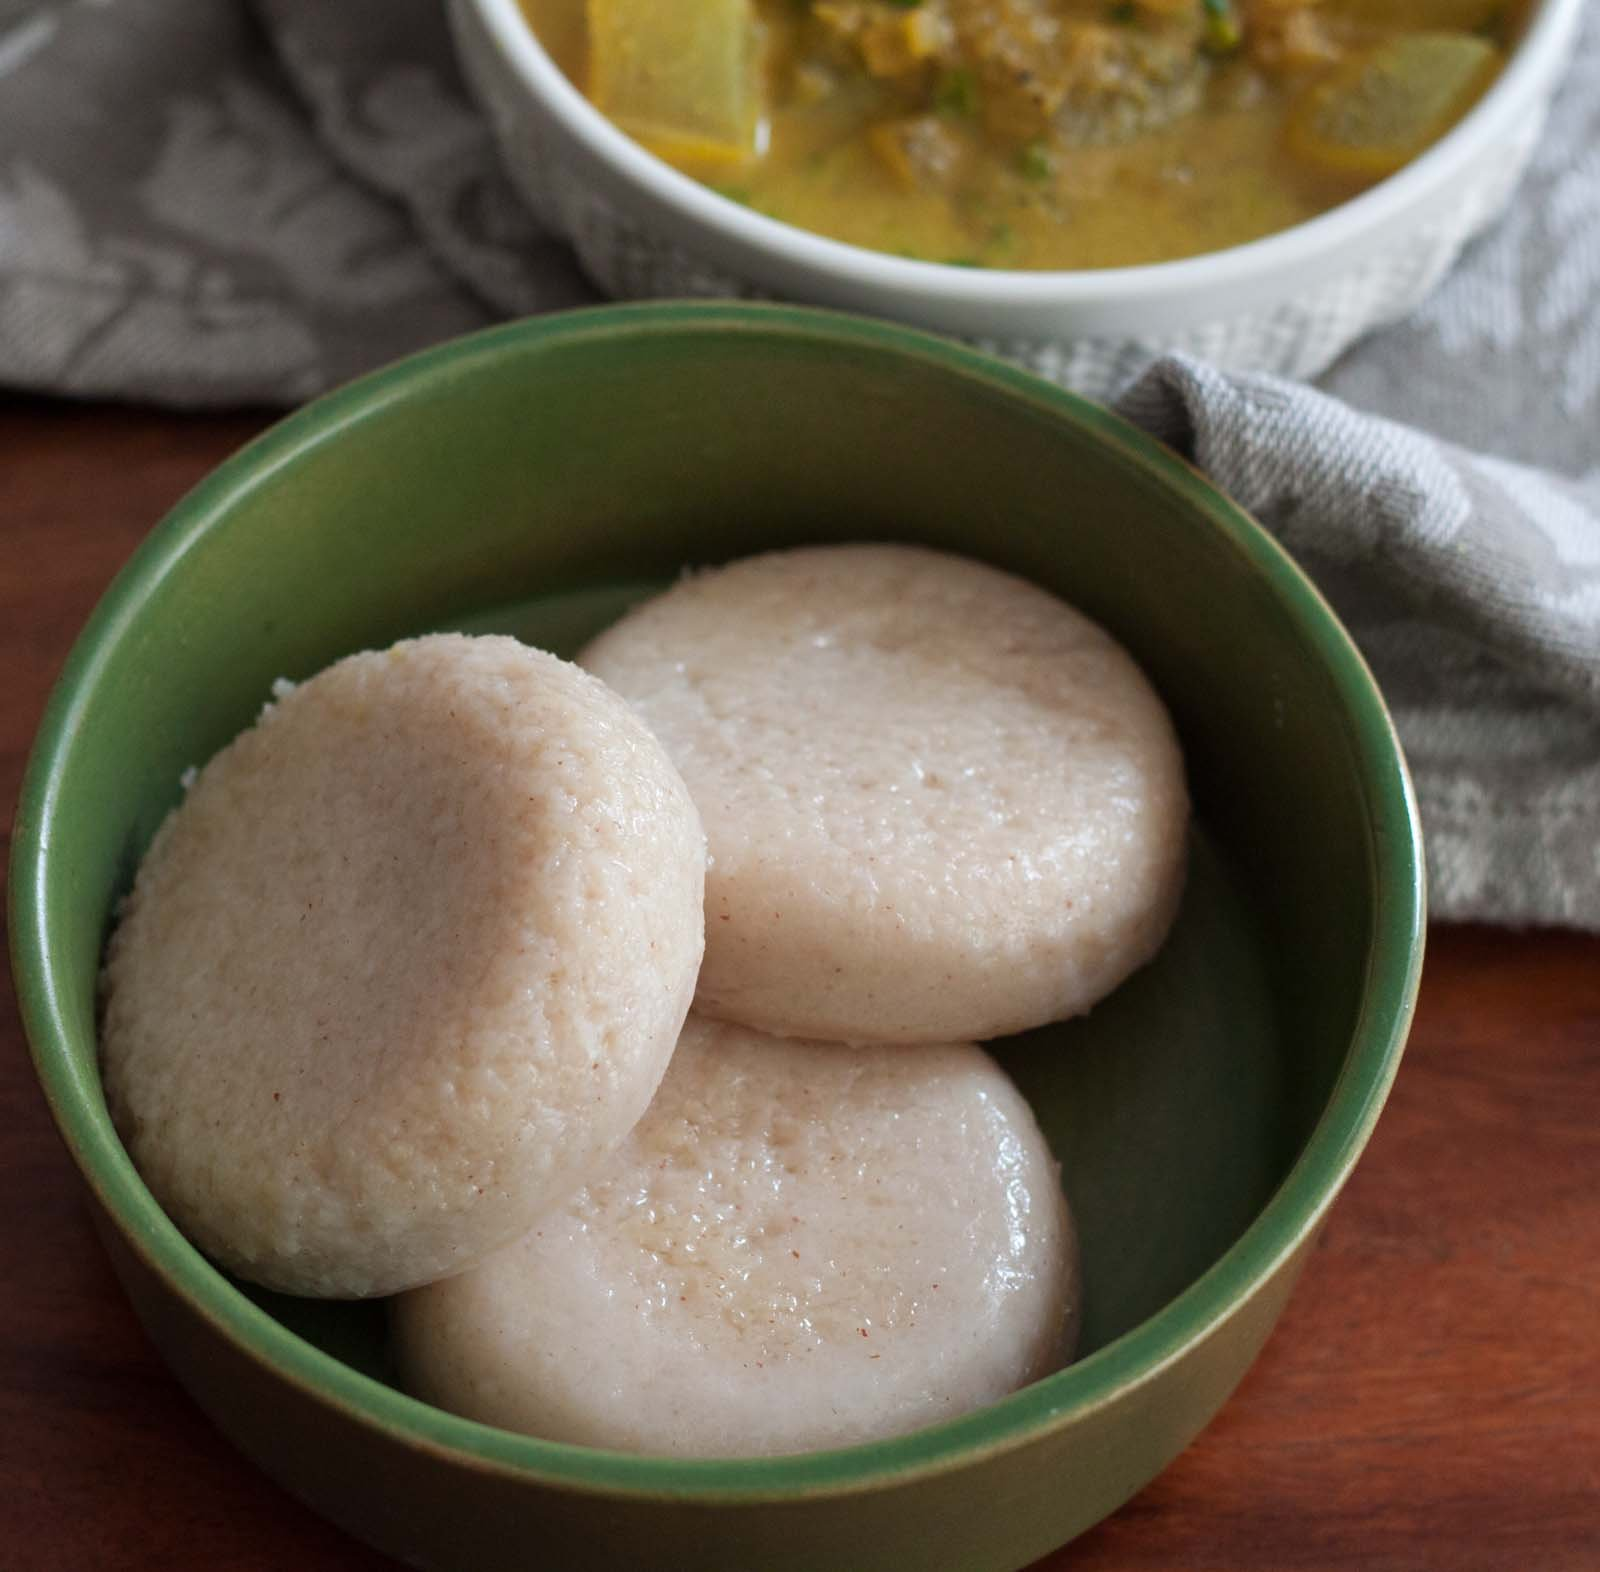 Goan style sana recipe soft steamed rice cakes by archanas kitchen goan style sana recipe soft steamed rice cakes forumfinder Images